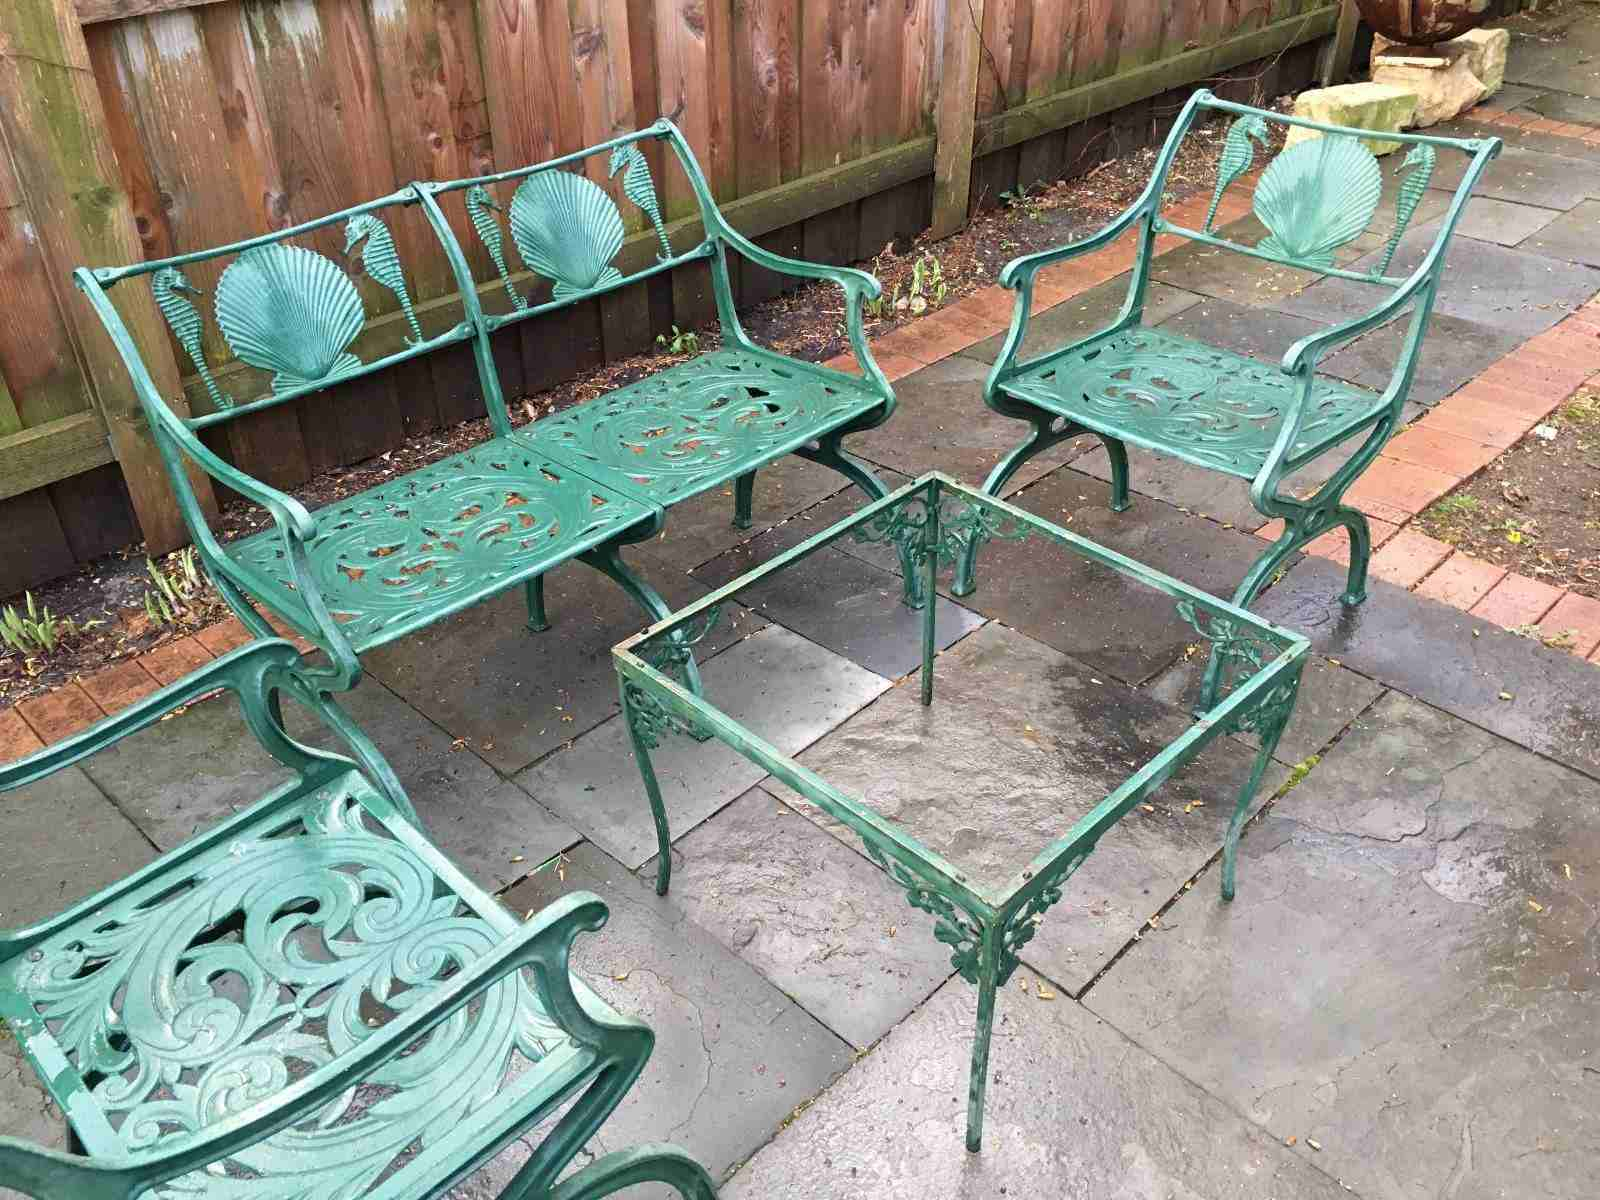 A Guide To Buying Vintage Patio Furniture For 1 Person Antique Black Iron Outdoor Swings (View 16 of 25)